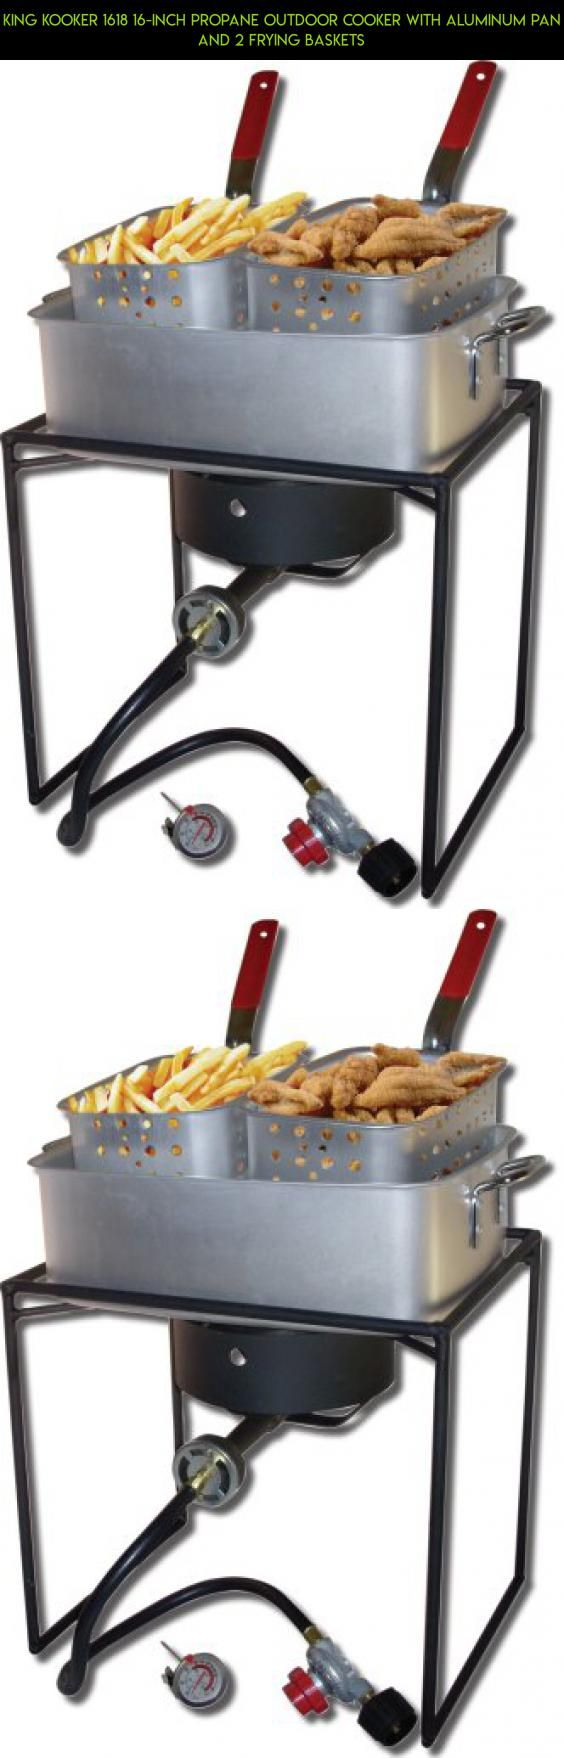 King Kooker 1618 16-Inch Propane Outdoor Cooker with Aluminum Pan and 2 Frying Baskets #outdoor #plans #tech #equipment #fpv #technology #cooking #drone #parts #kit #products #shopping #camera #gadgets #racing